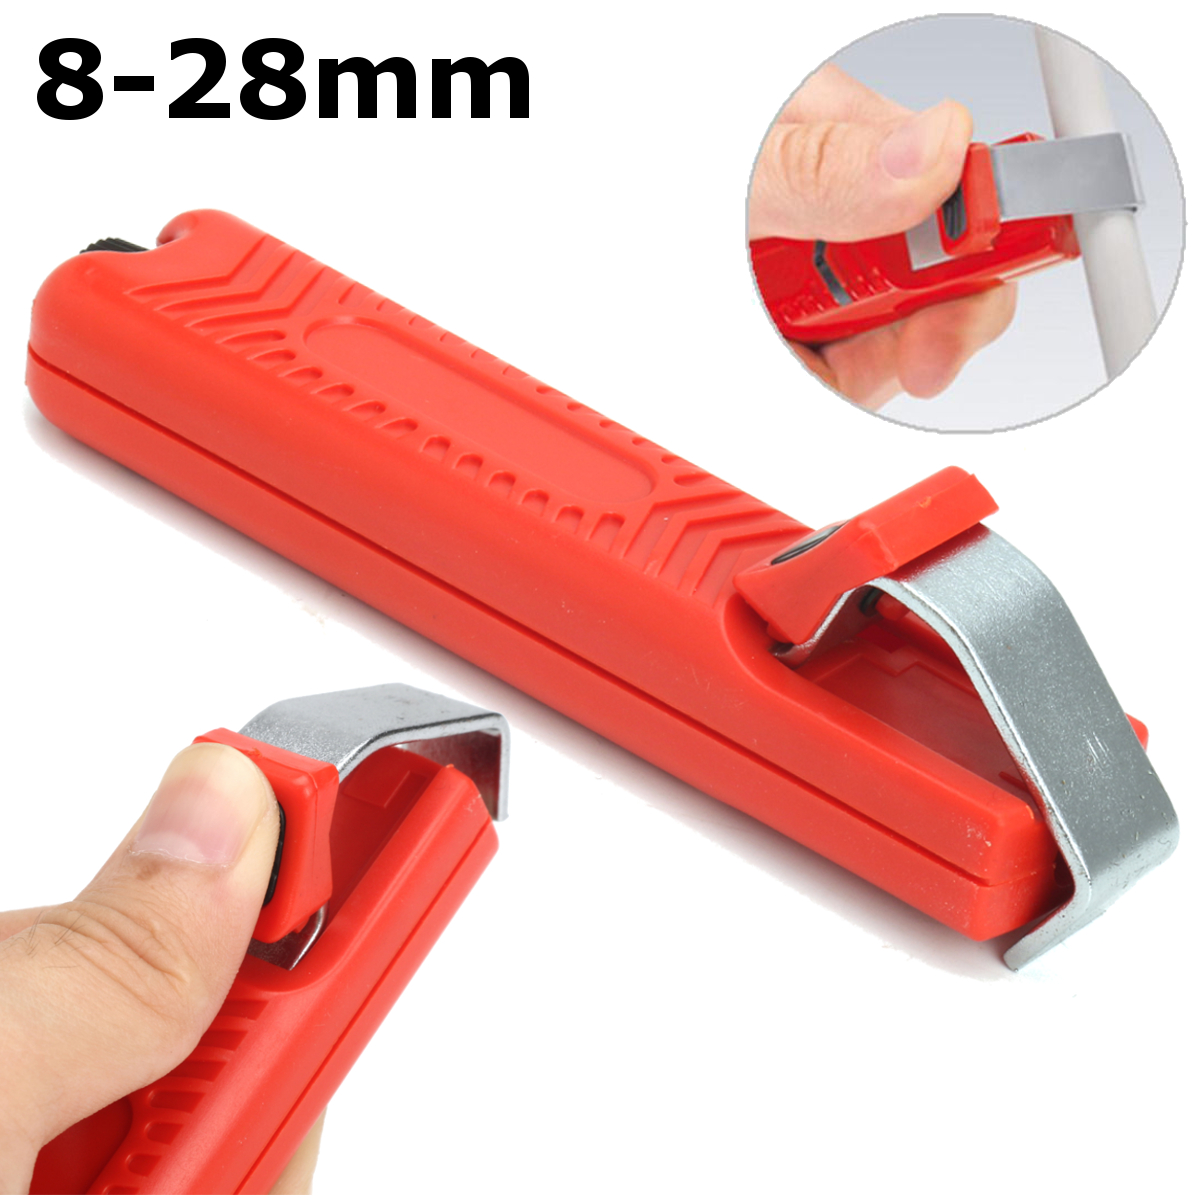 8-28mm Wire Stripper Stripping Cutter Plier Crimping Tool For PVC Rubber Cable